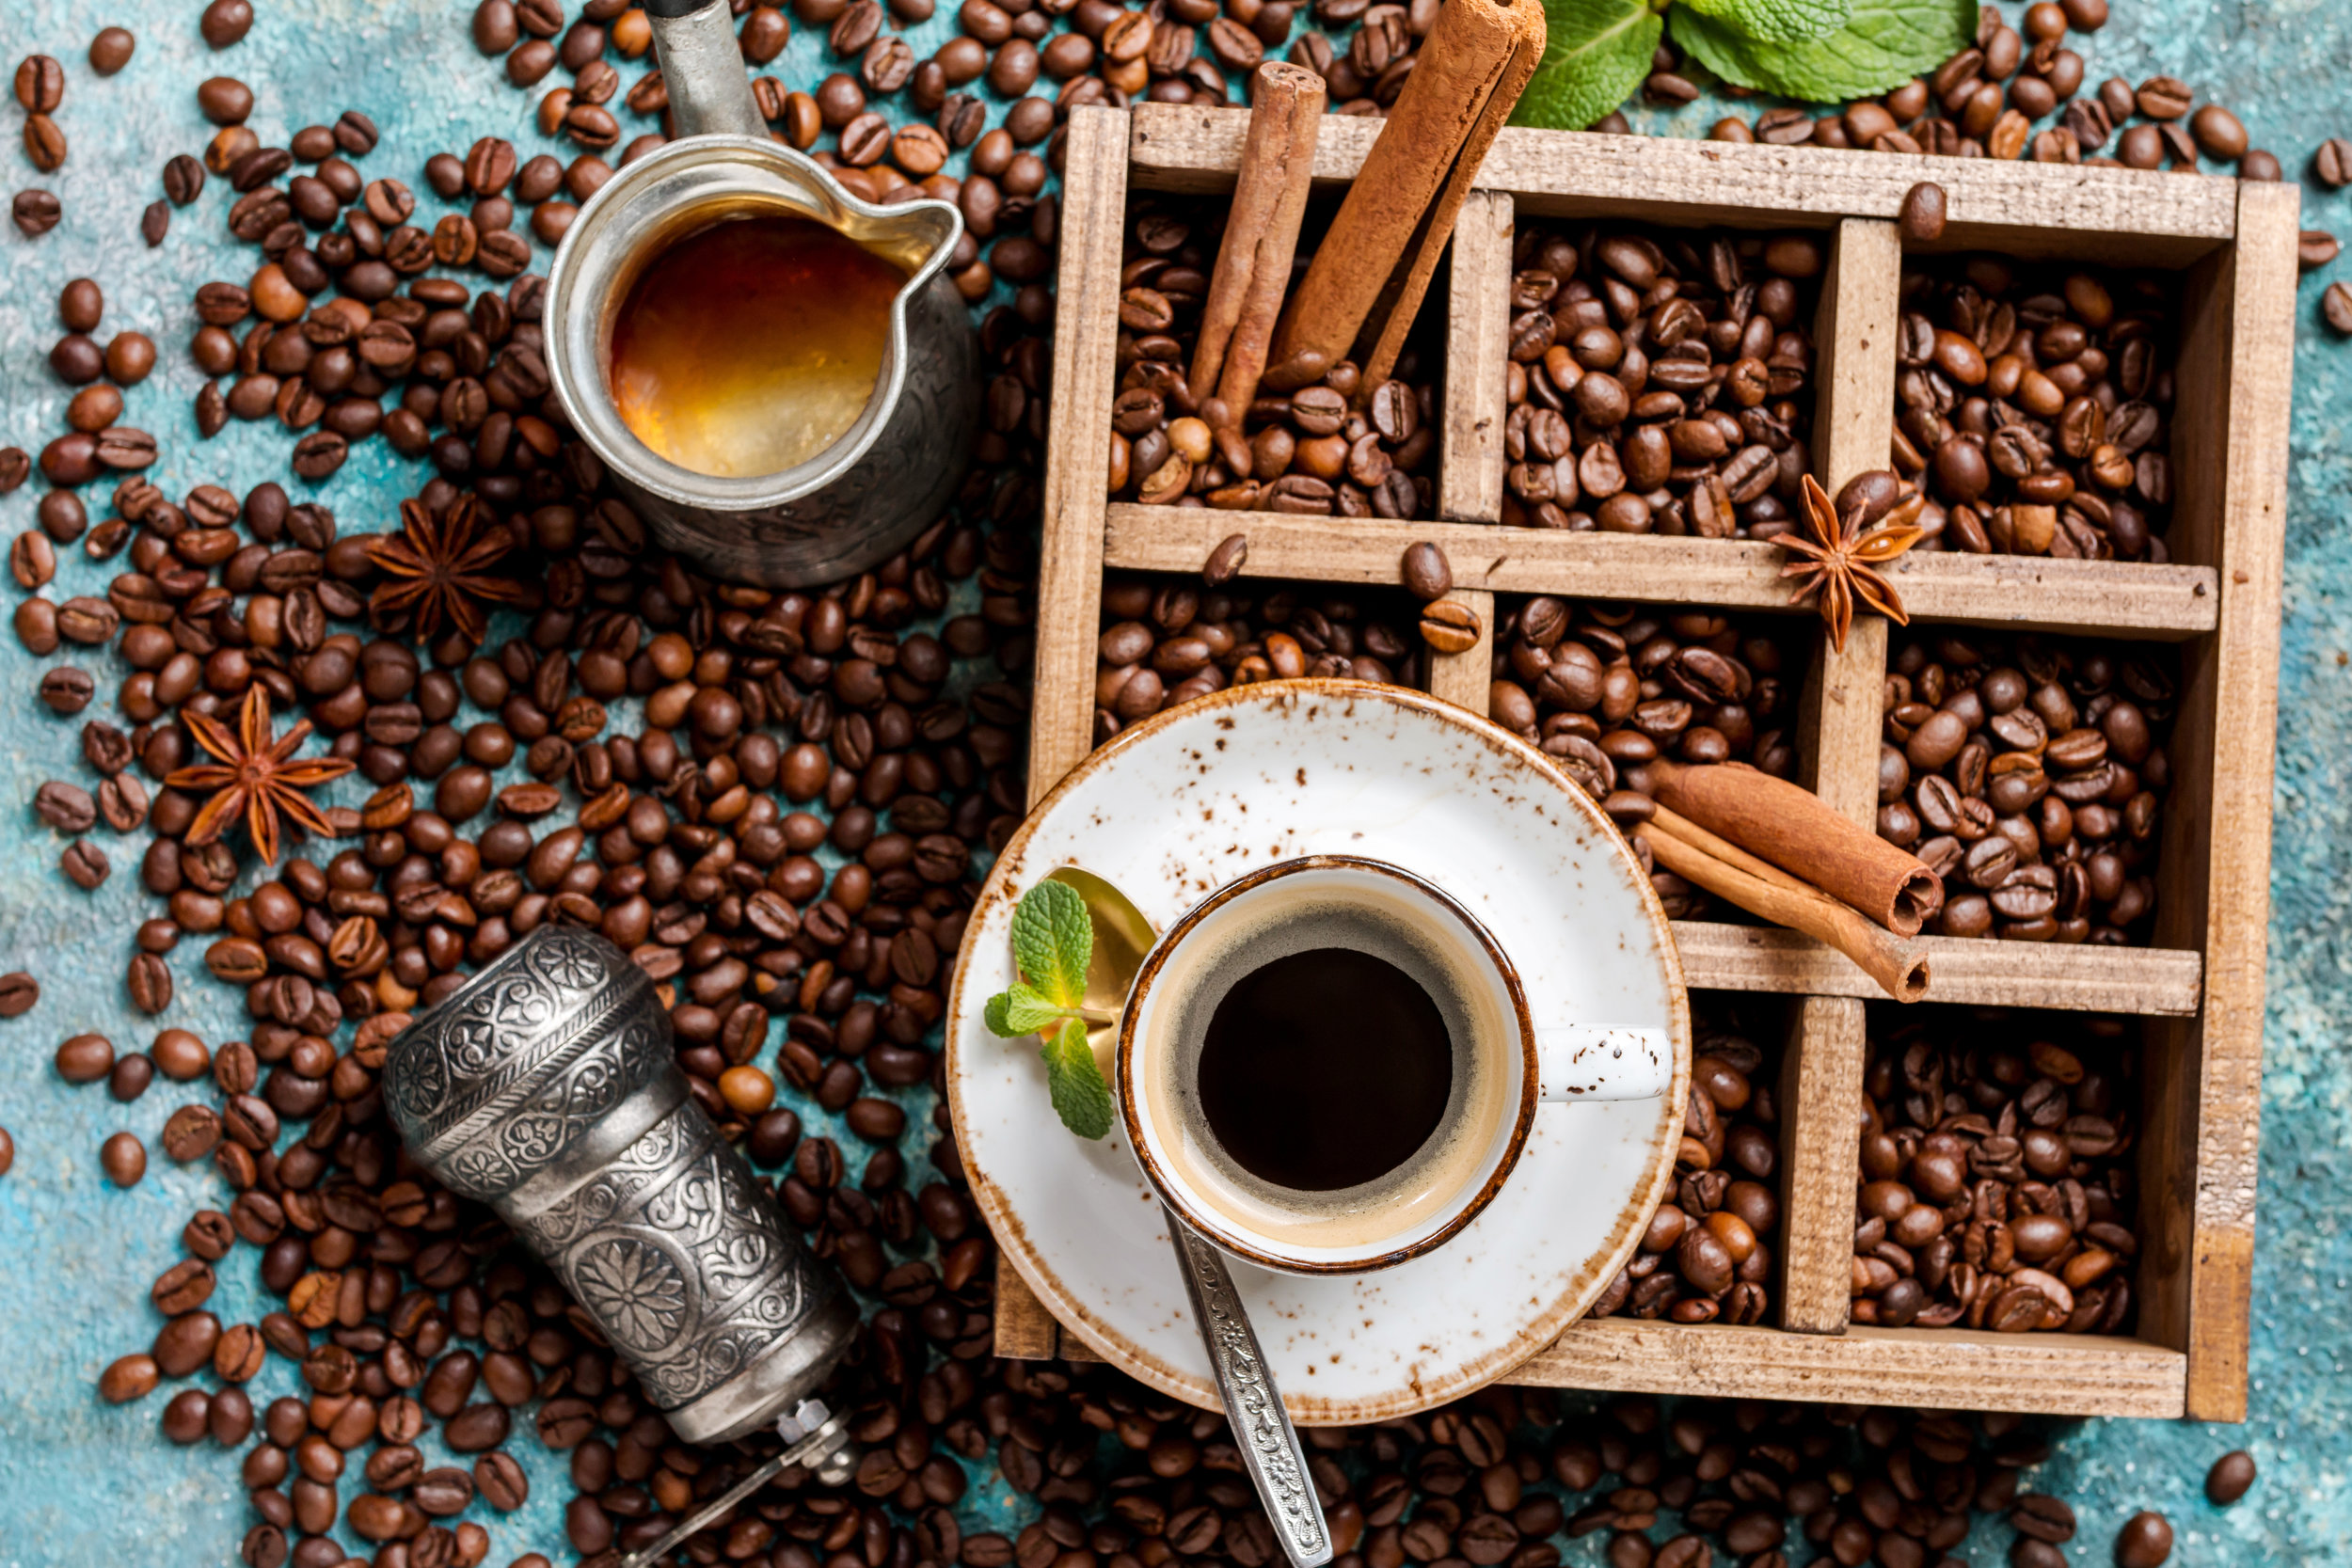 """Coffee also has anti-inflammatory properties and is protective against oxidative damage."" -"